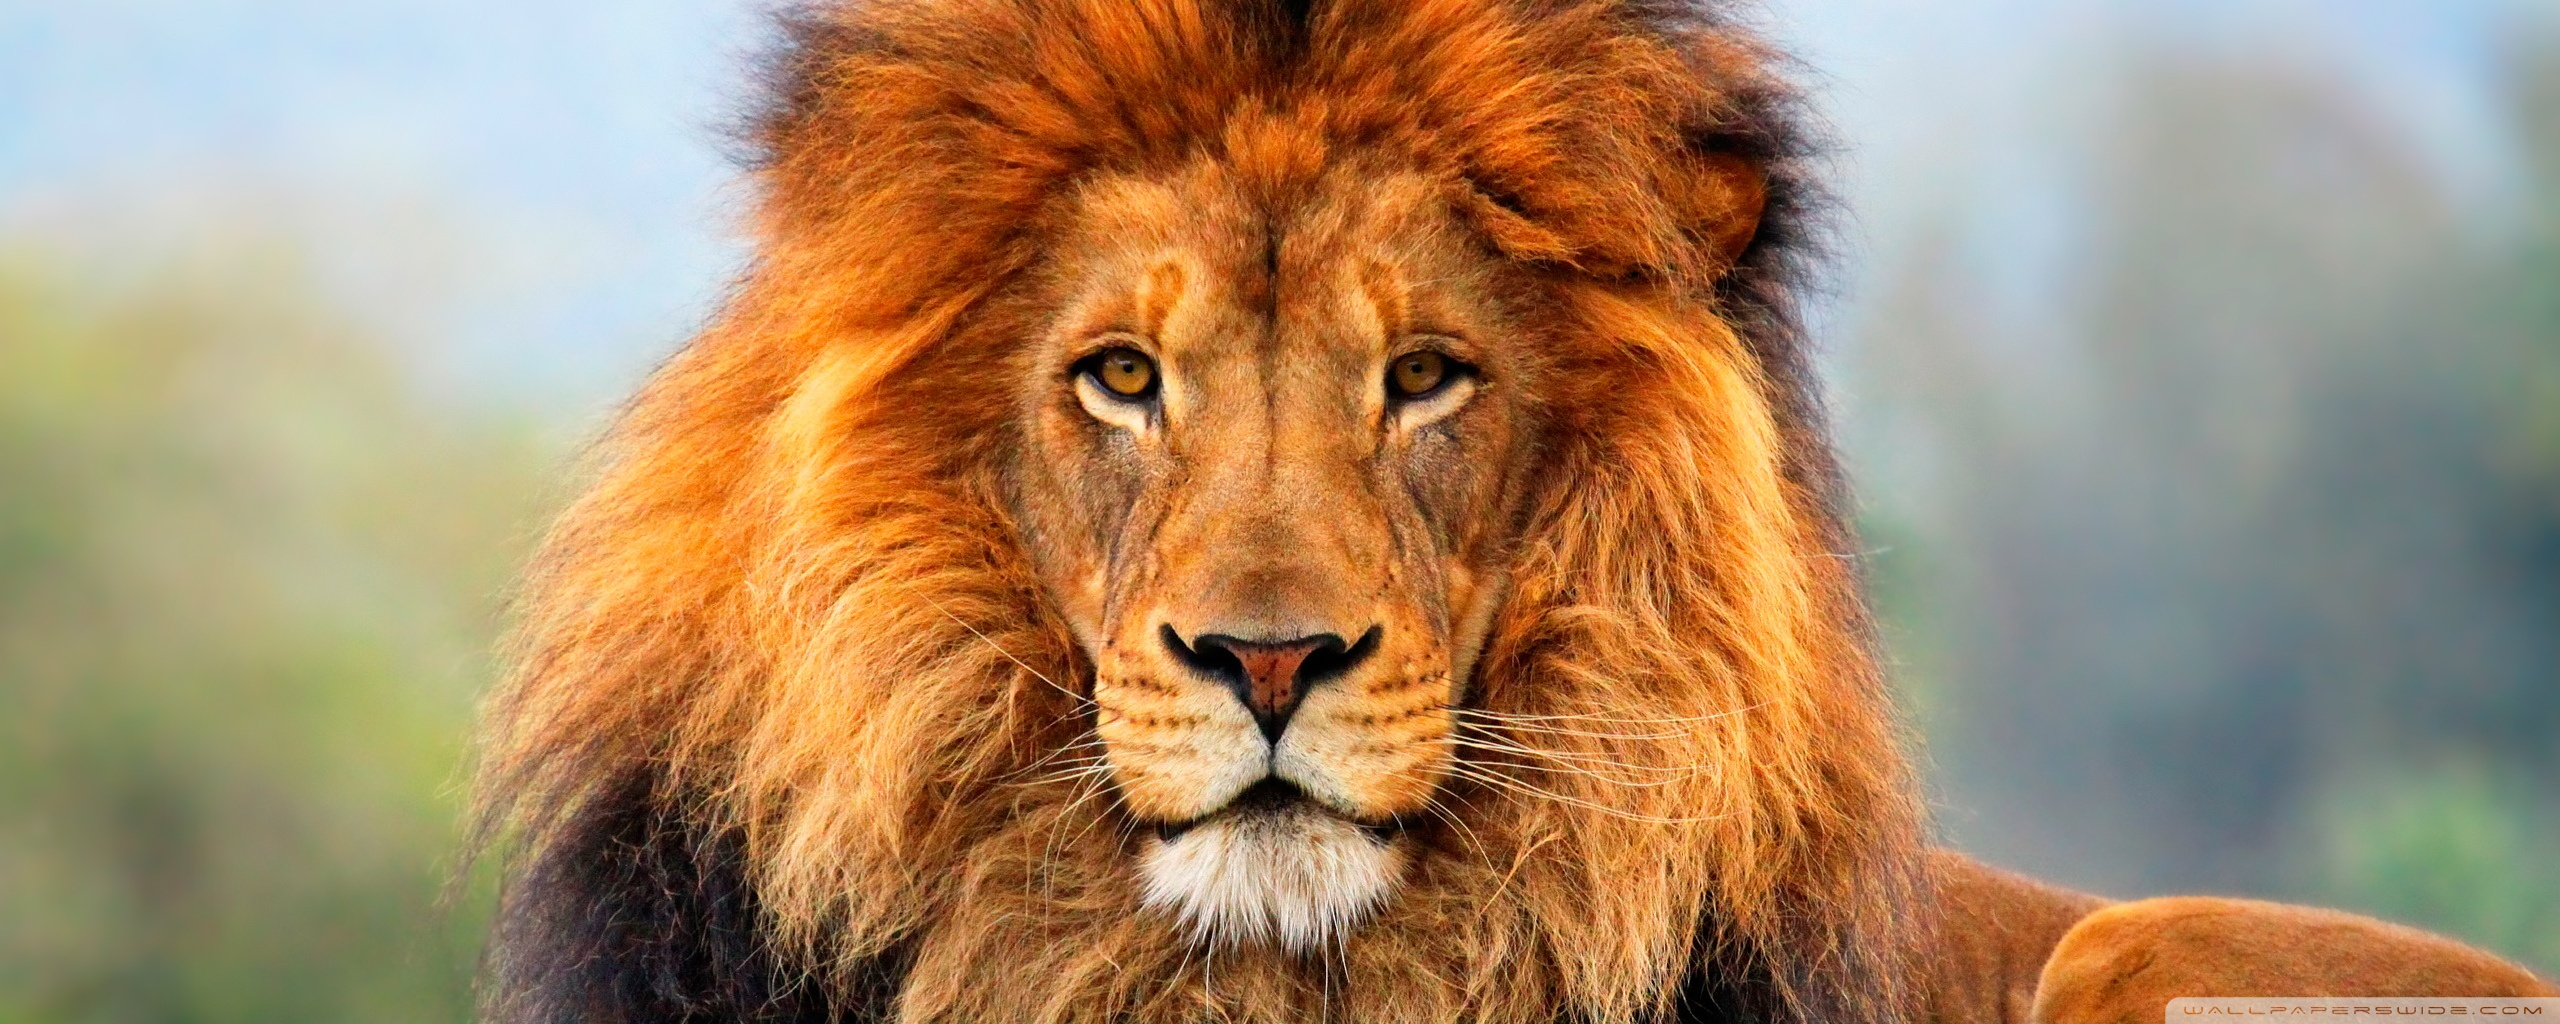 Animal Lion Wallpaper Full HD Colorful With Picture Of Animal Lion 2560x1024